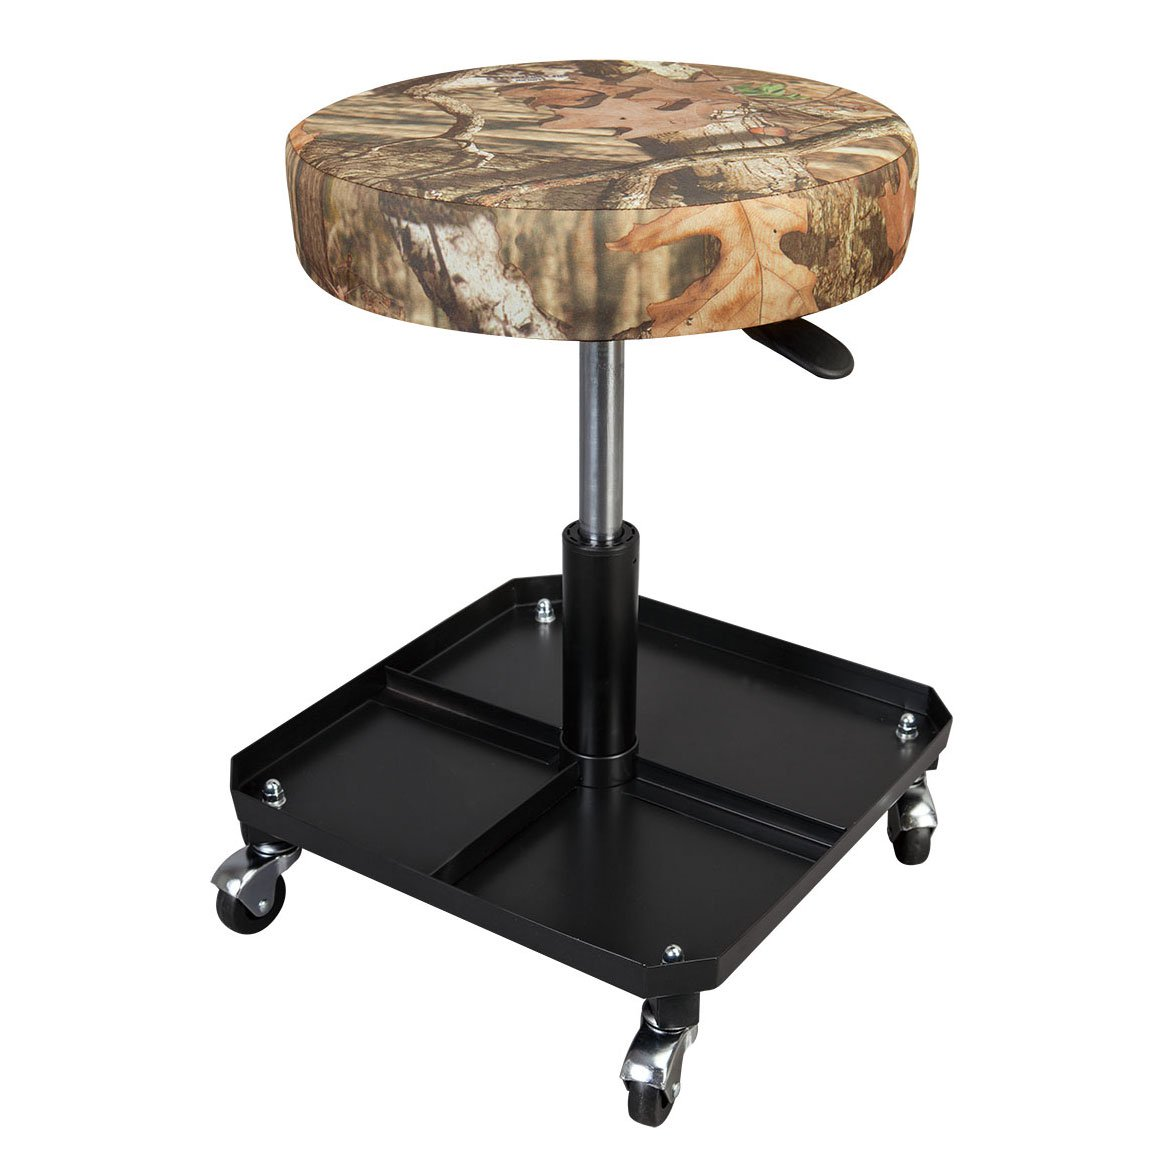 Torin Big Red Rolling Pneumatic Creeper Adjustable Garage Mechanic Stool, Camo